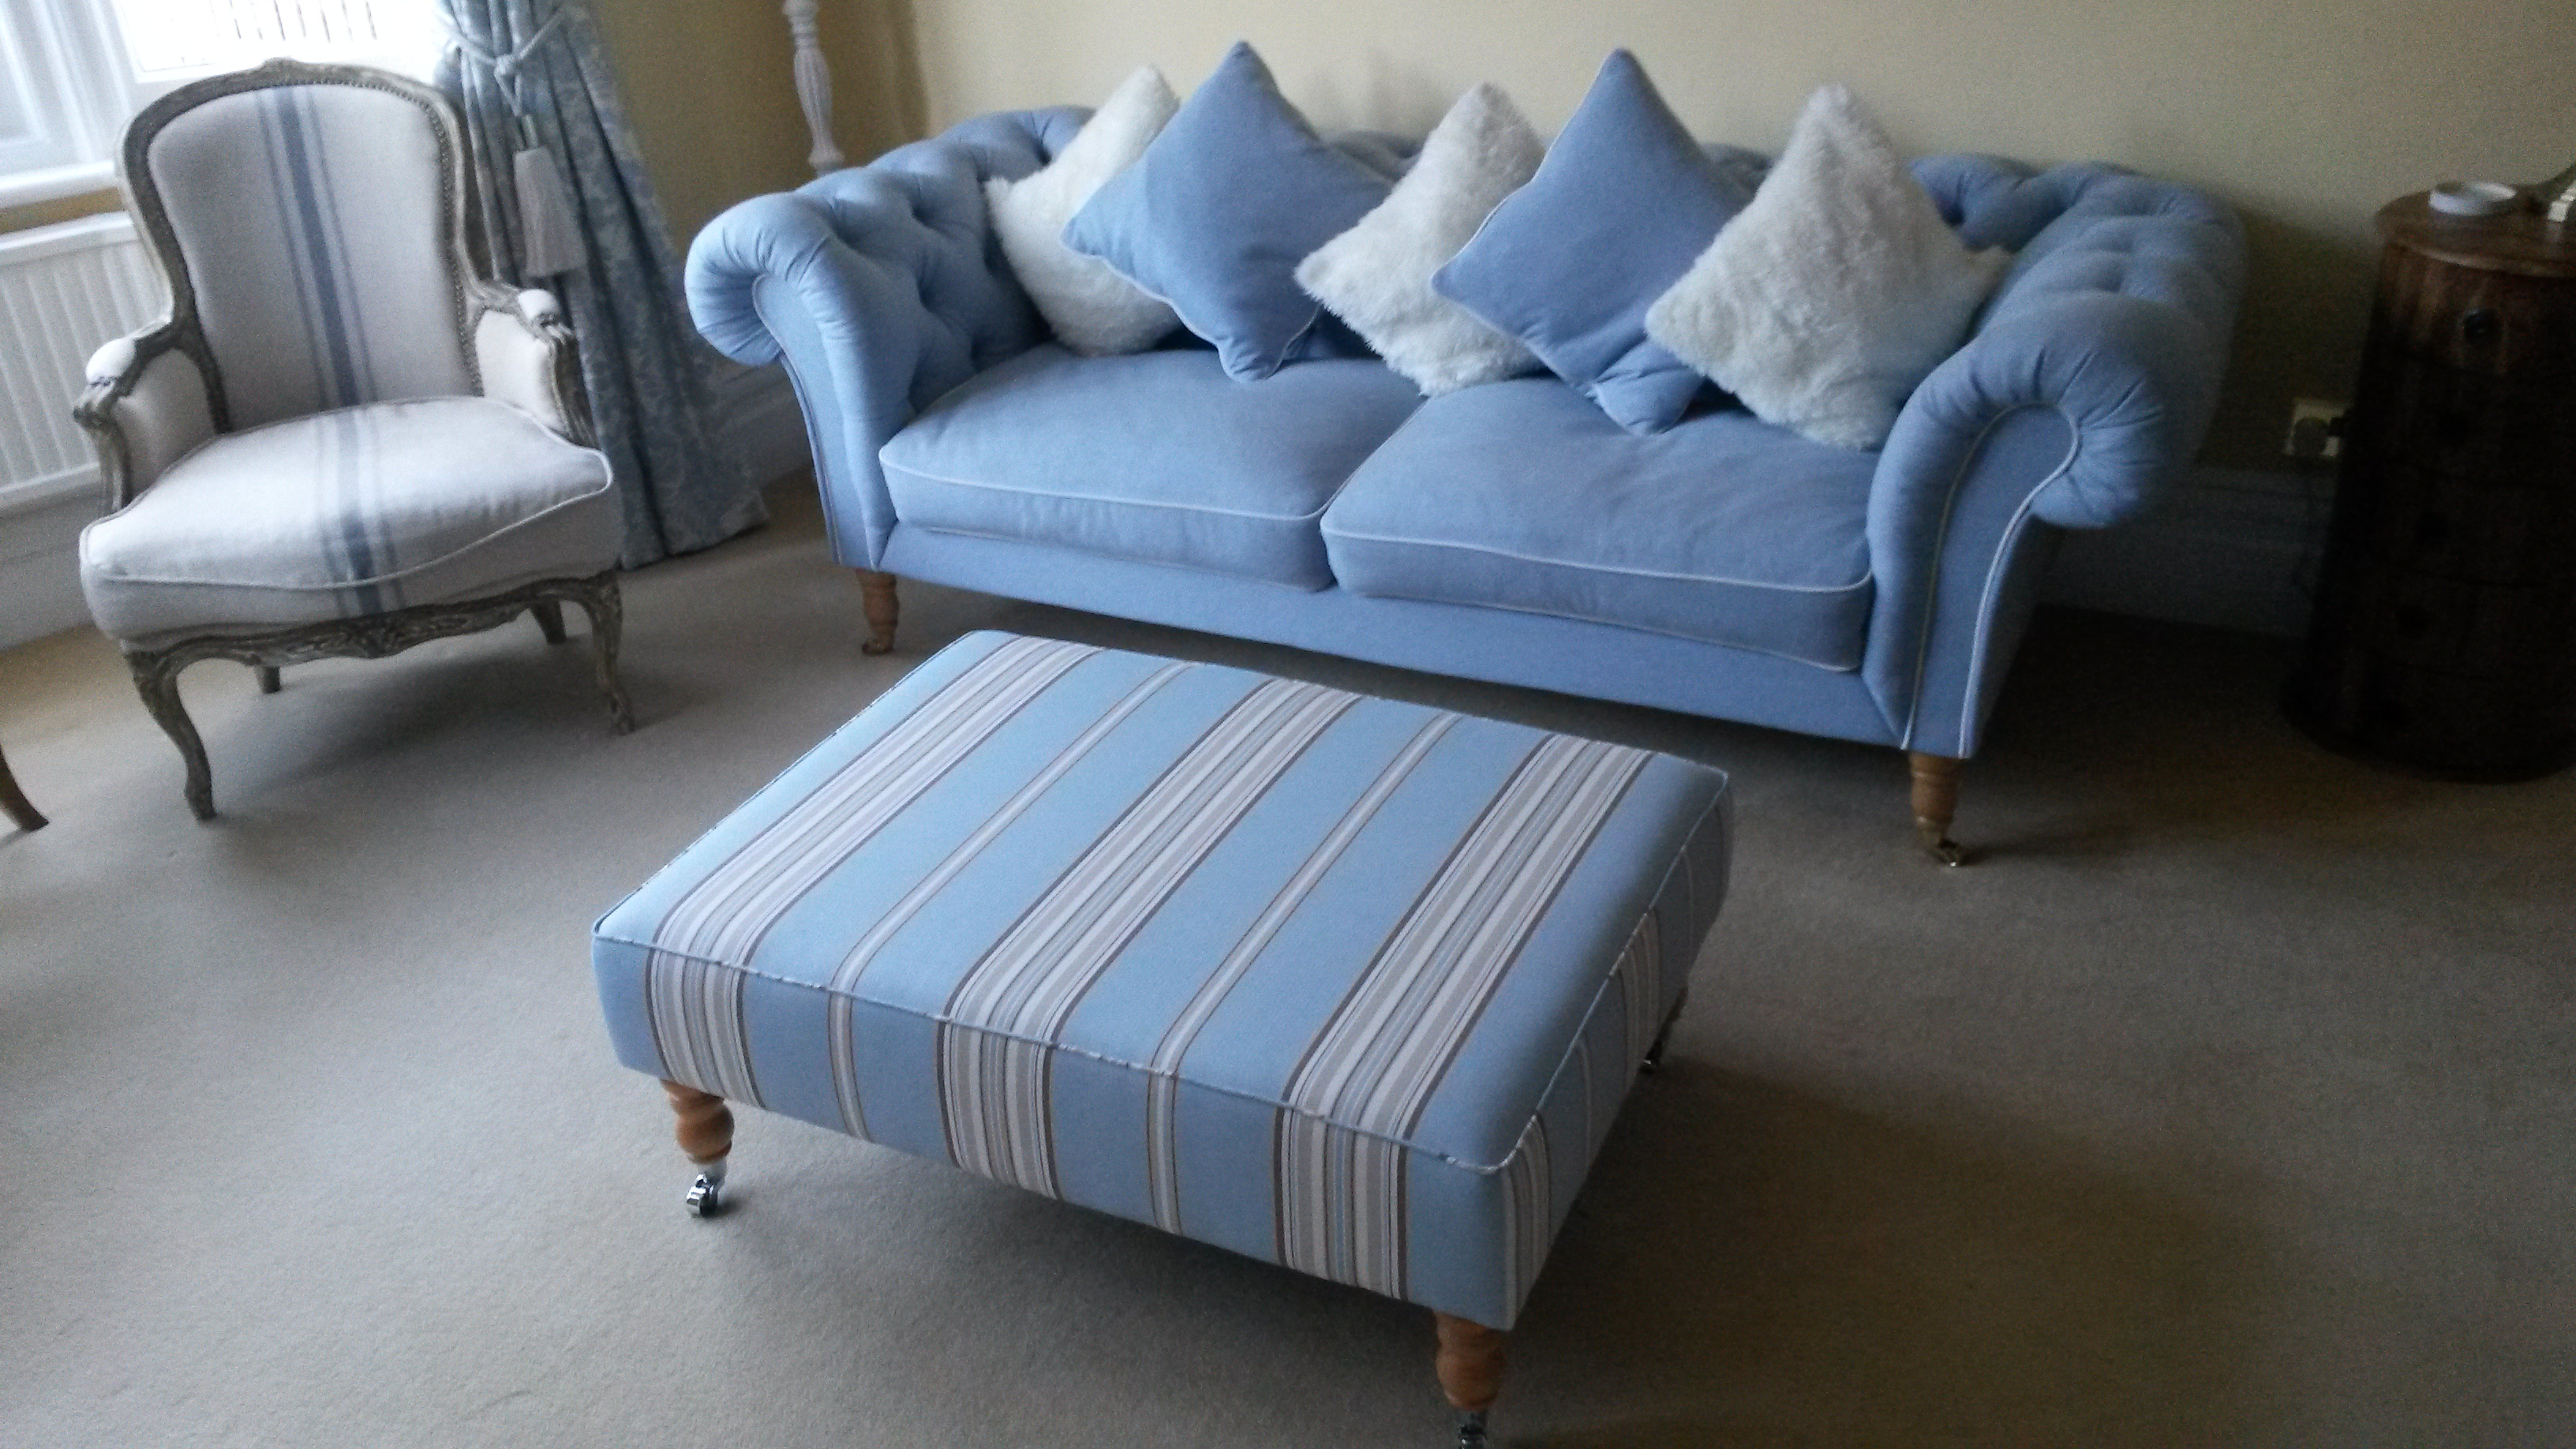 Sofa with cusions and footrest upholstered with light blue fabric